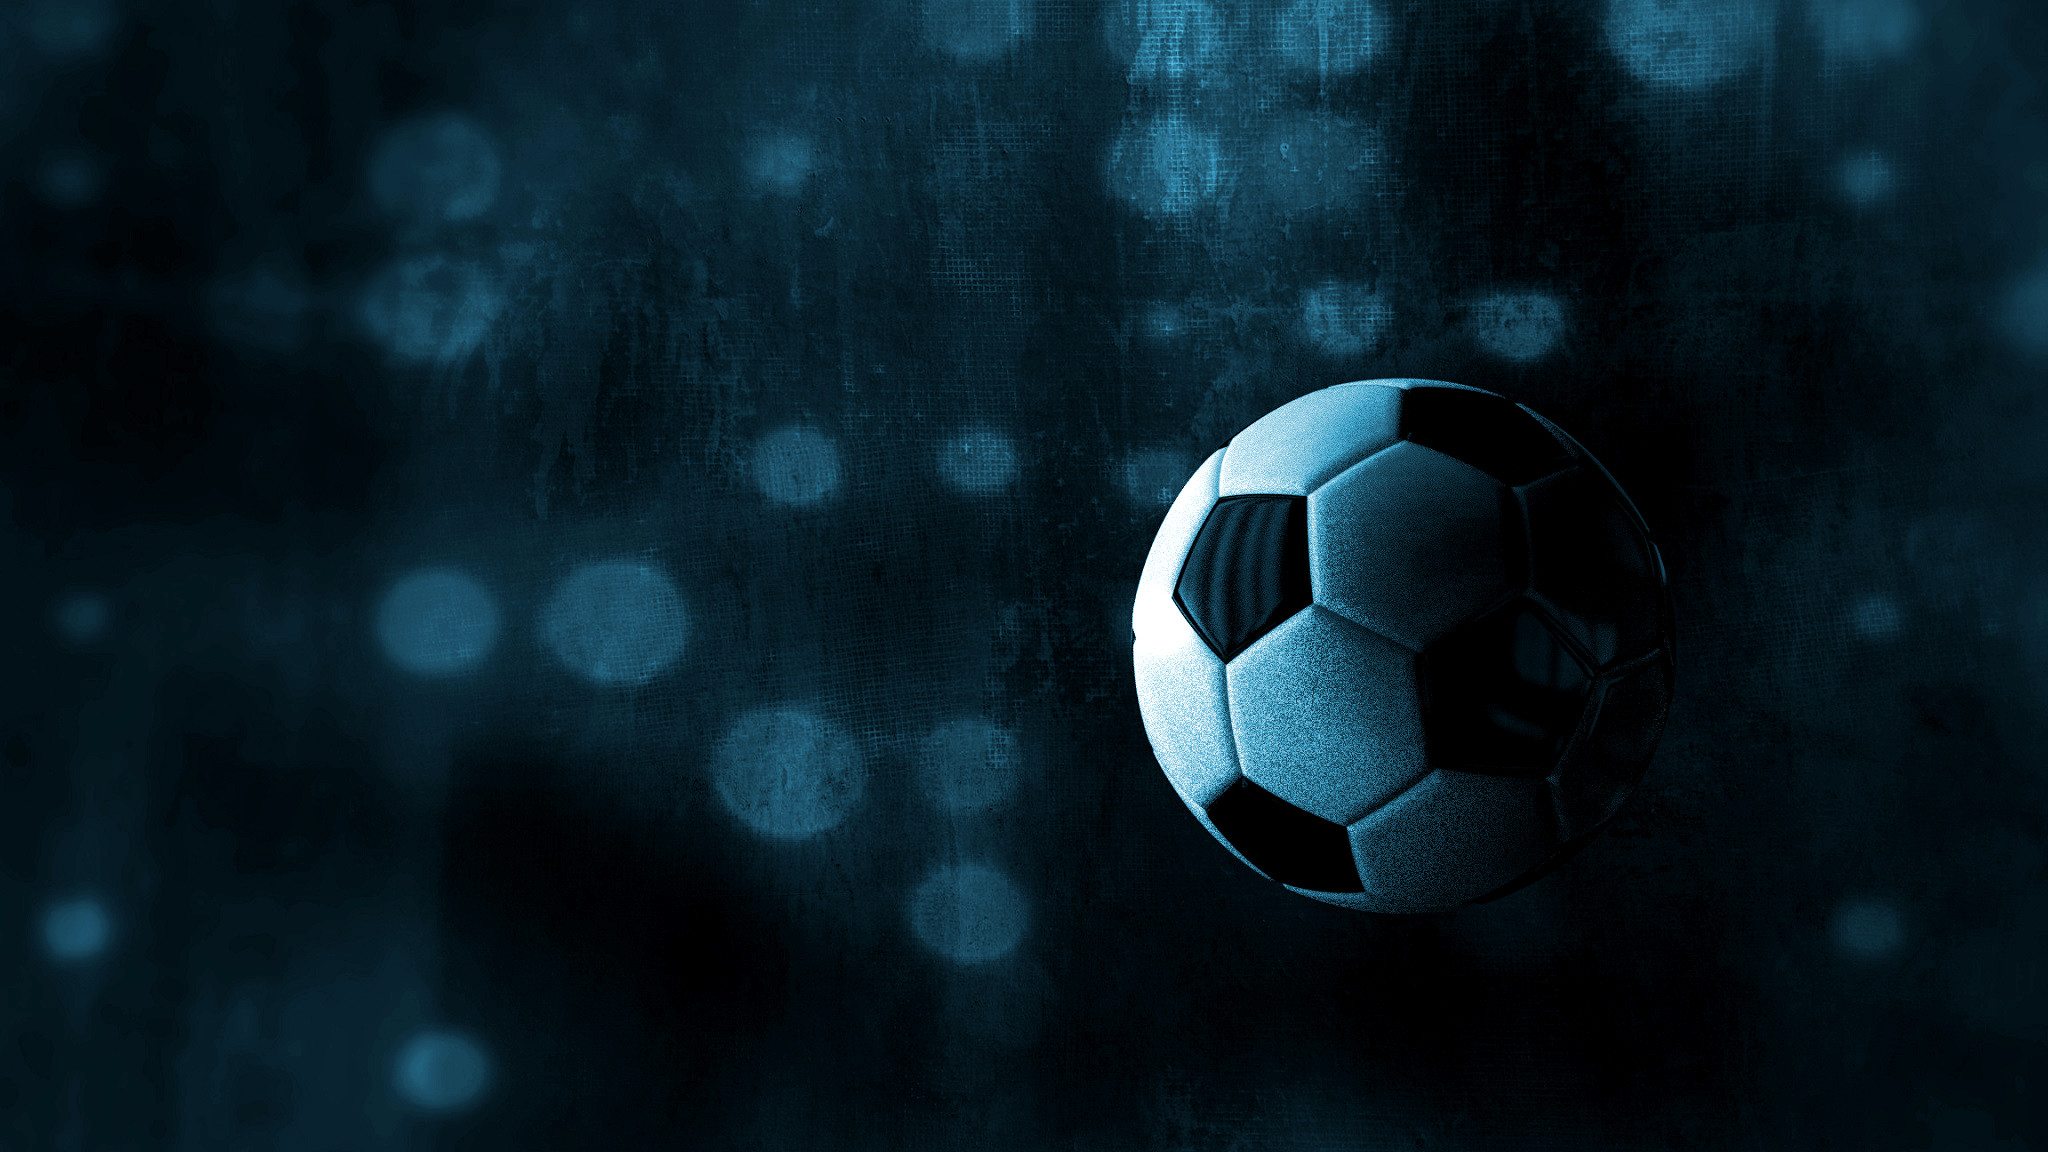 Black wallpaper with a football.